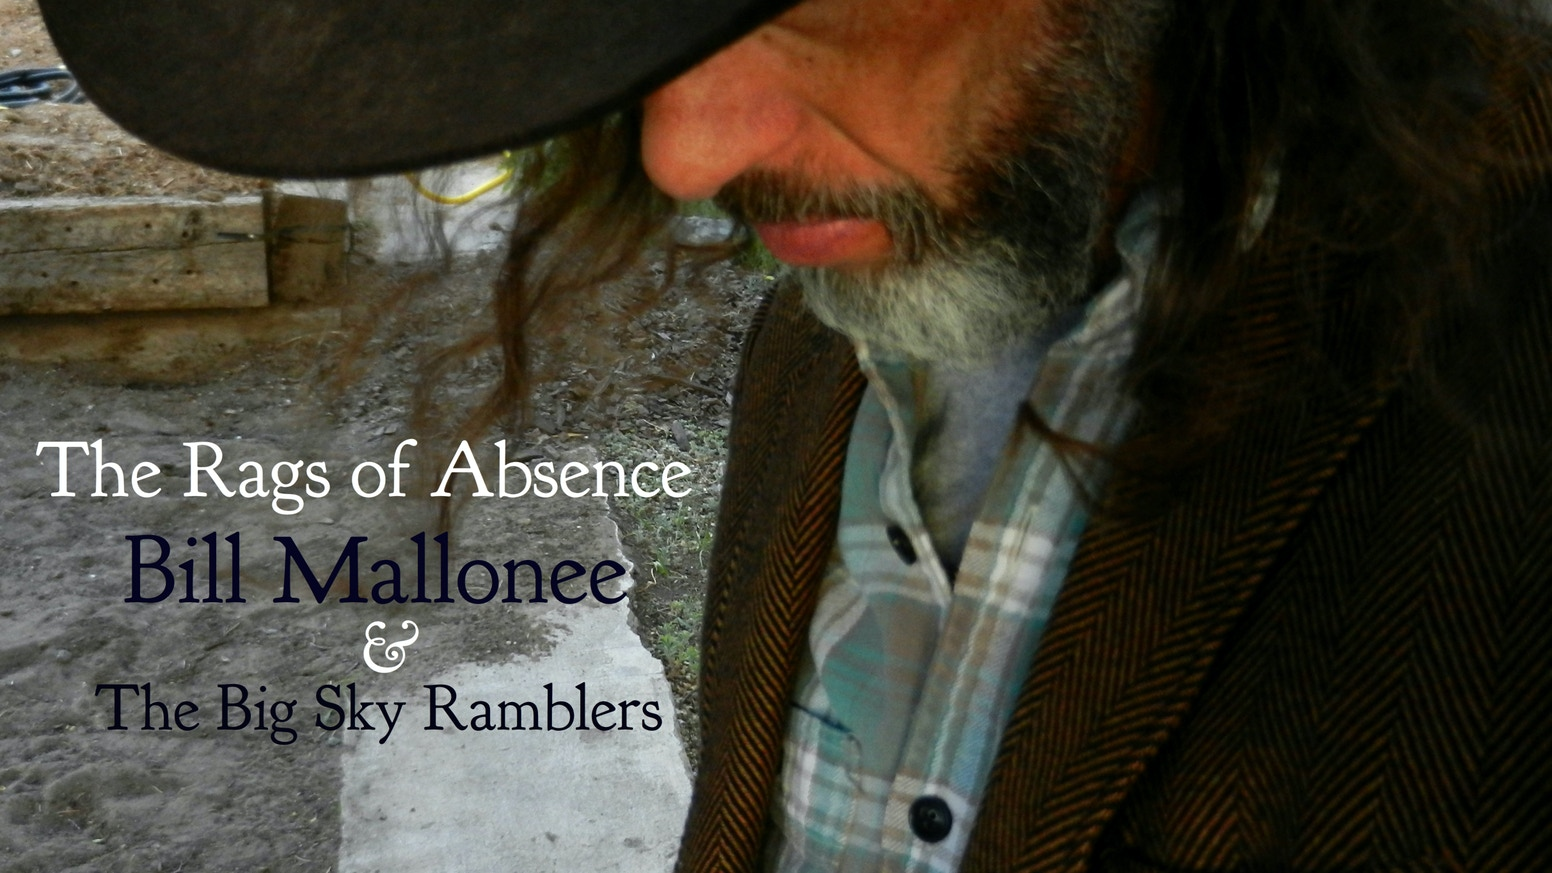 Quot The Rags Of Absence Quot Bill Mallonee Amp The Big Sky